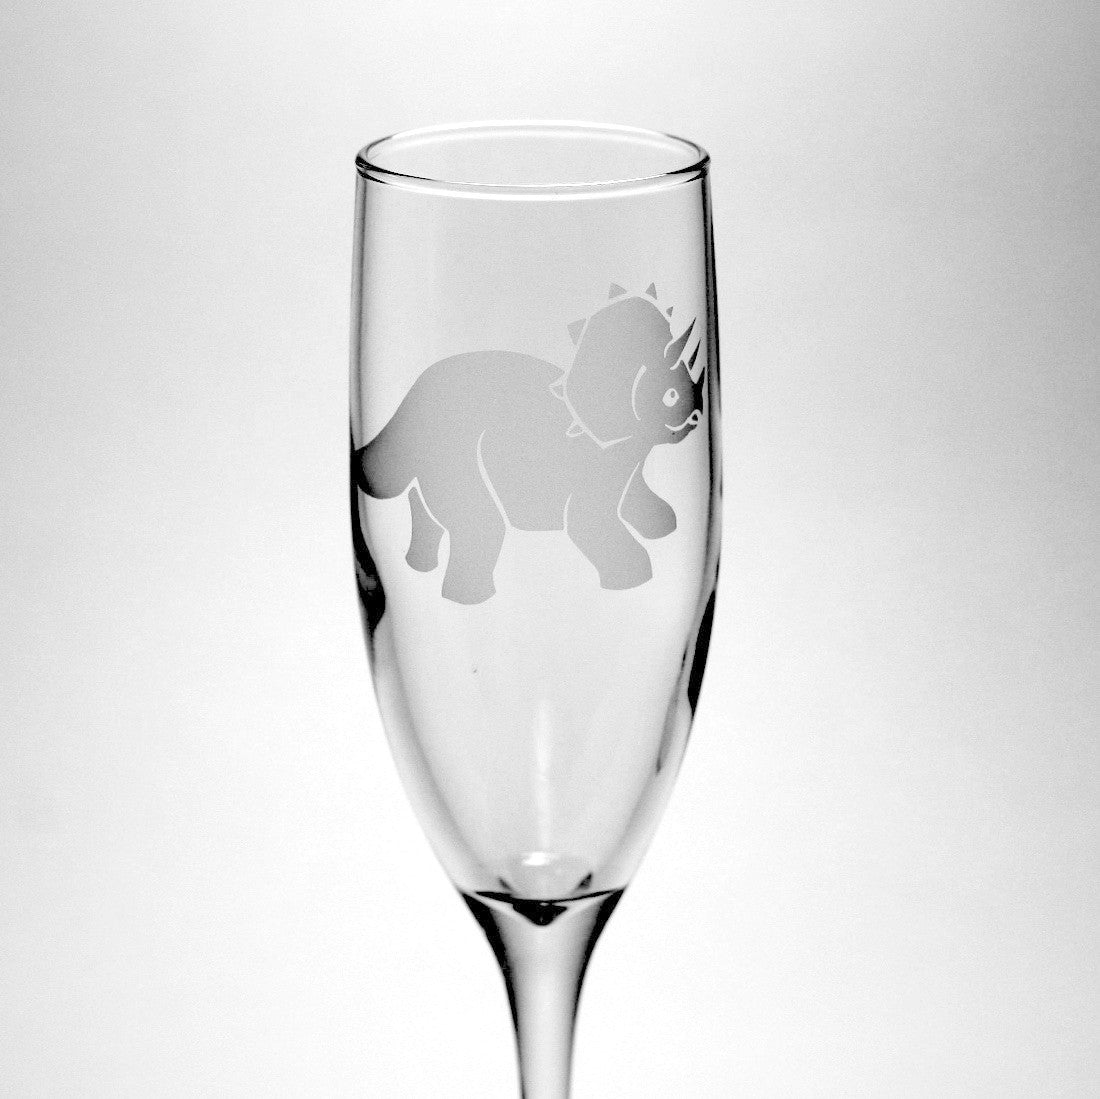 Triceratops champagne flute